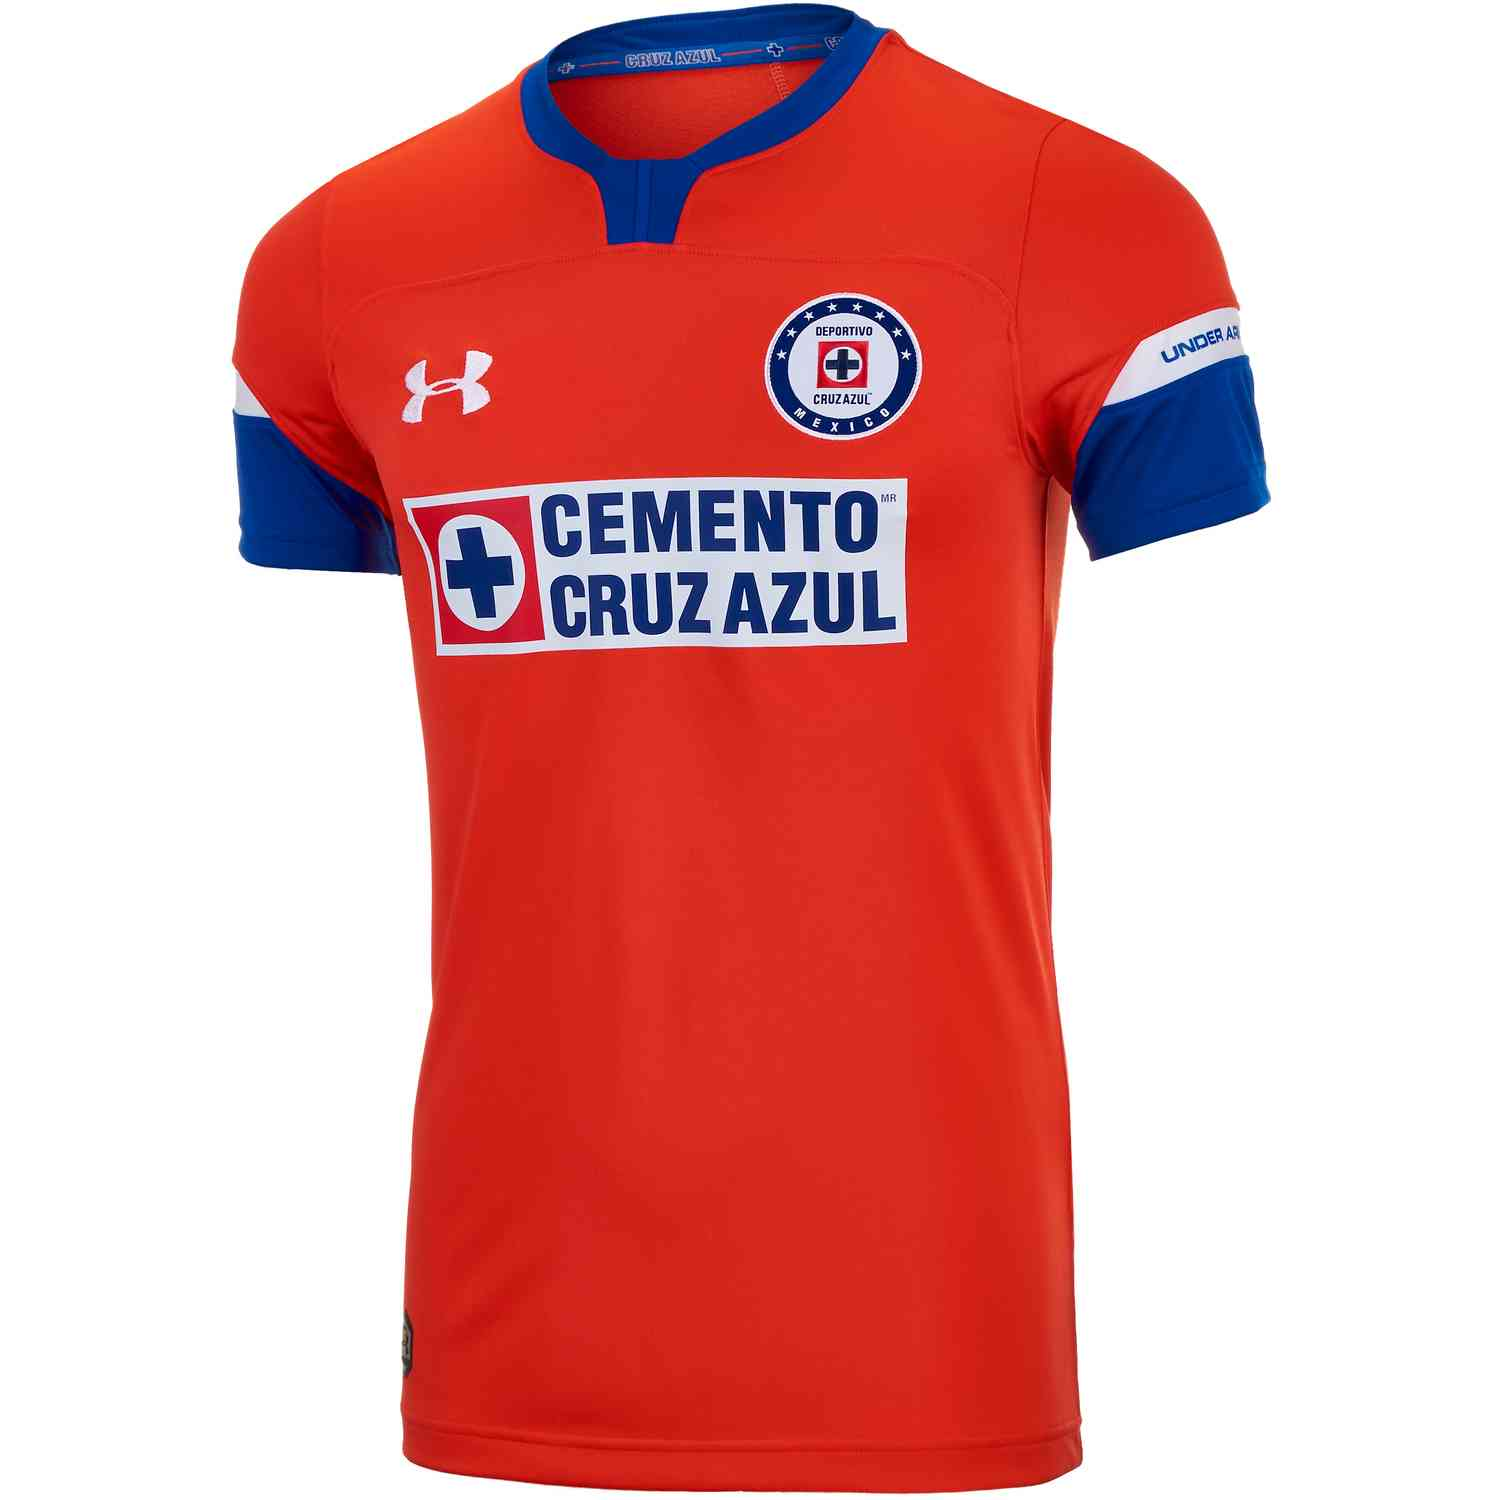 49405be18 Under Armour Cruz Azul 3rd Jersey 2018-19 - SoccerPro